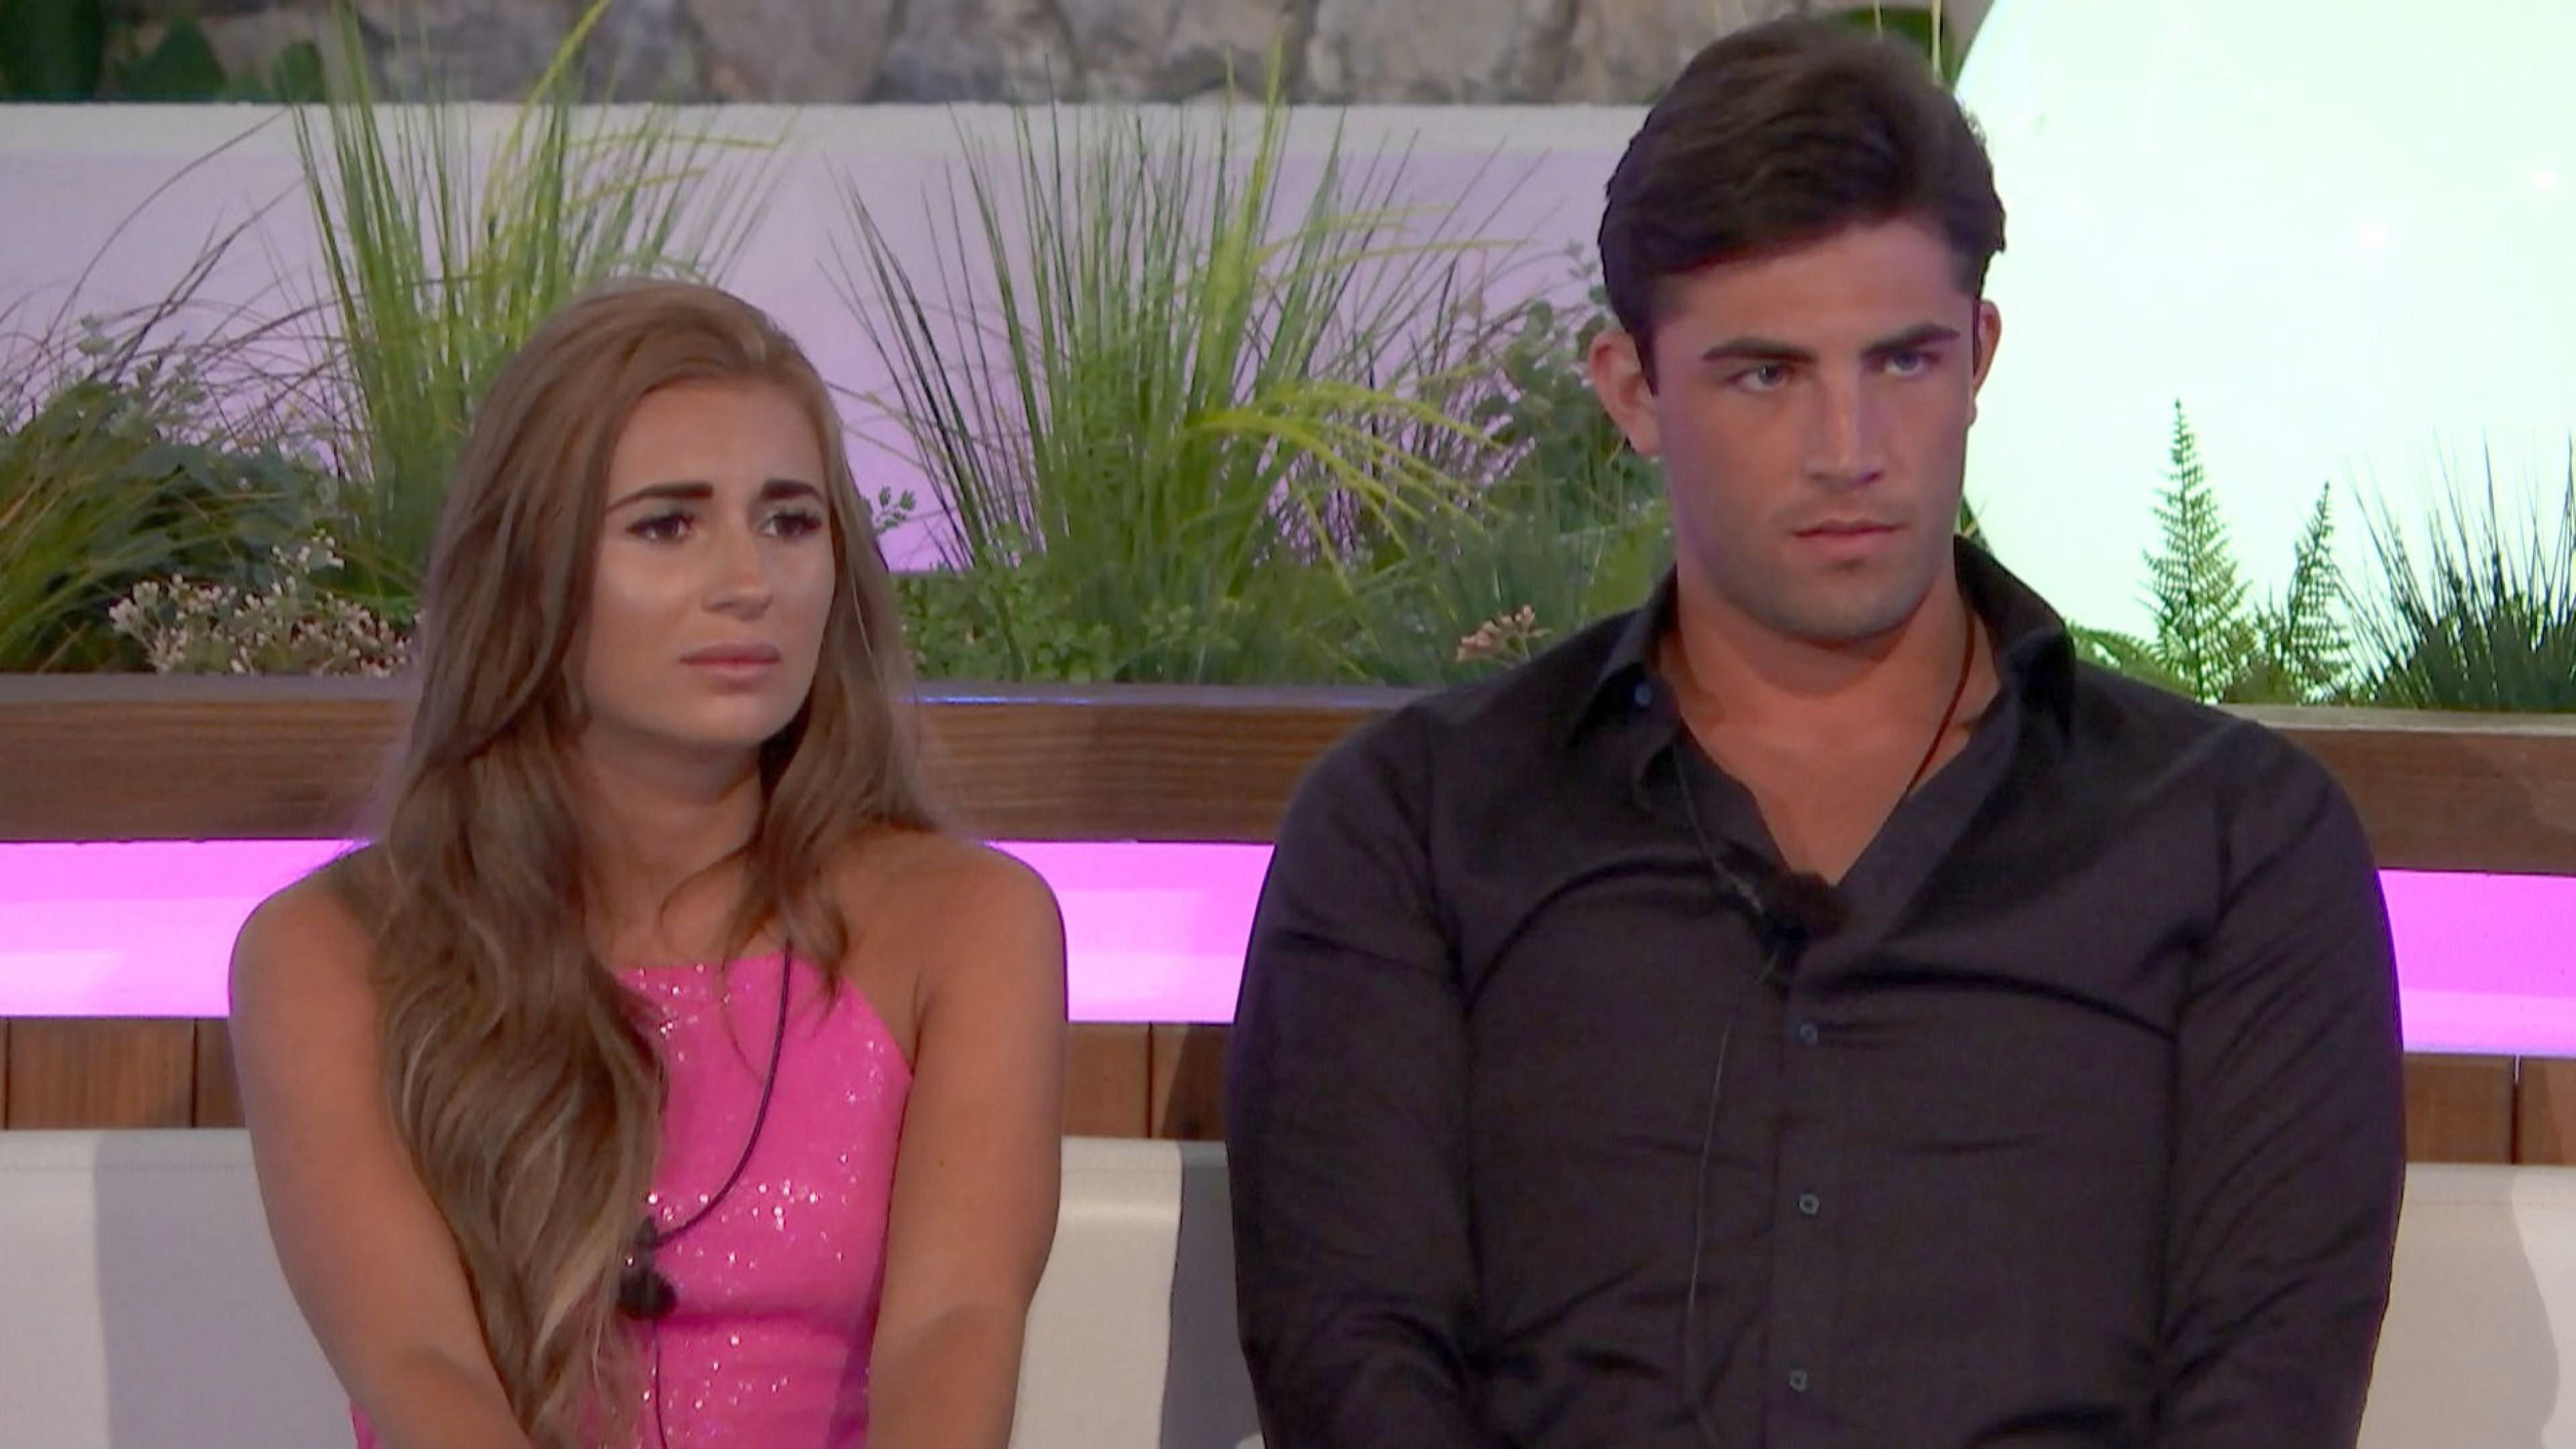 'Love Island' Rep Clarifies Claims Jack Has Been 'Liking' Dani's Instagram